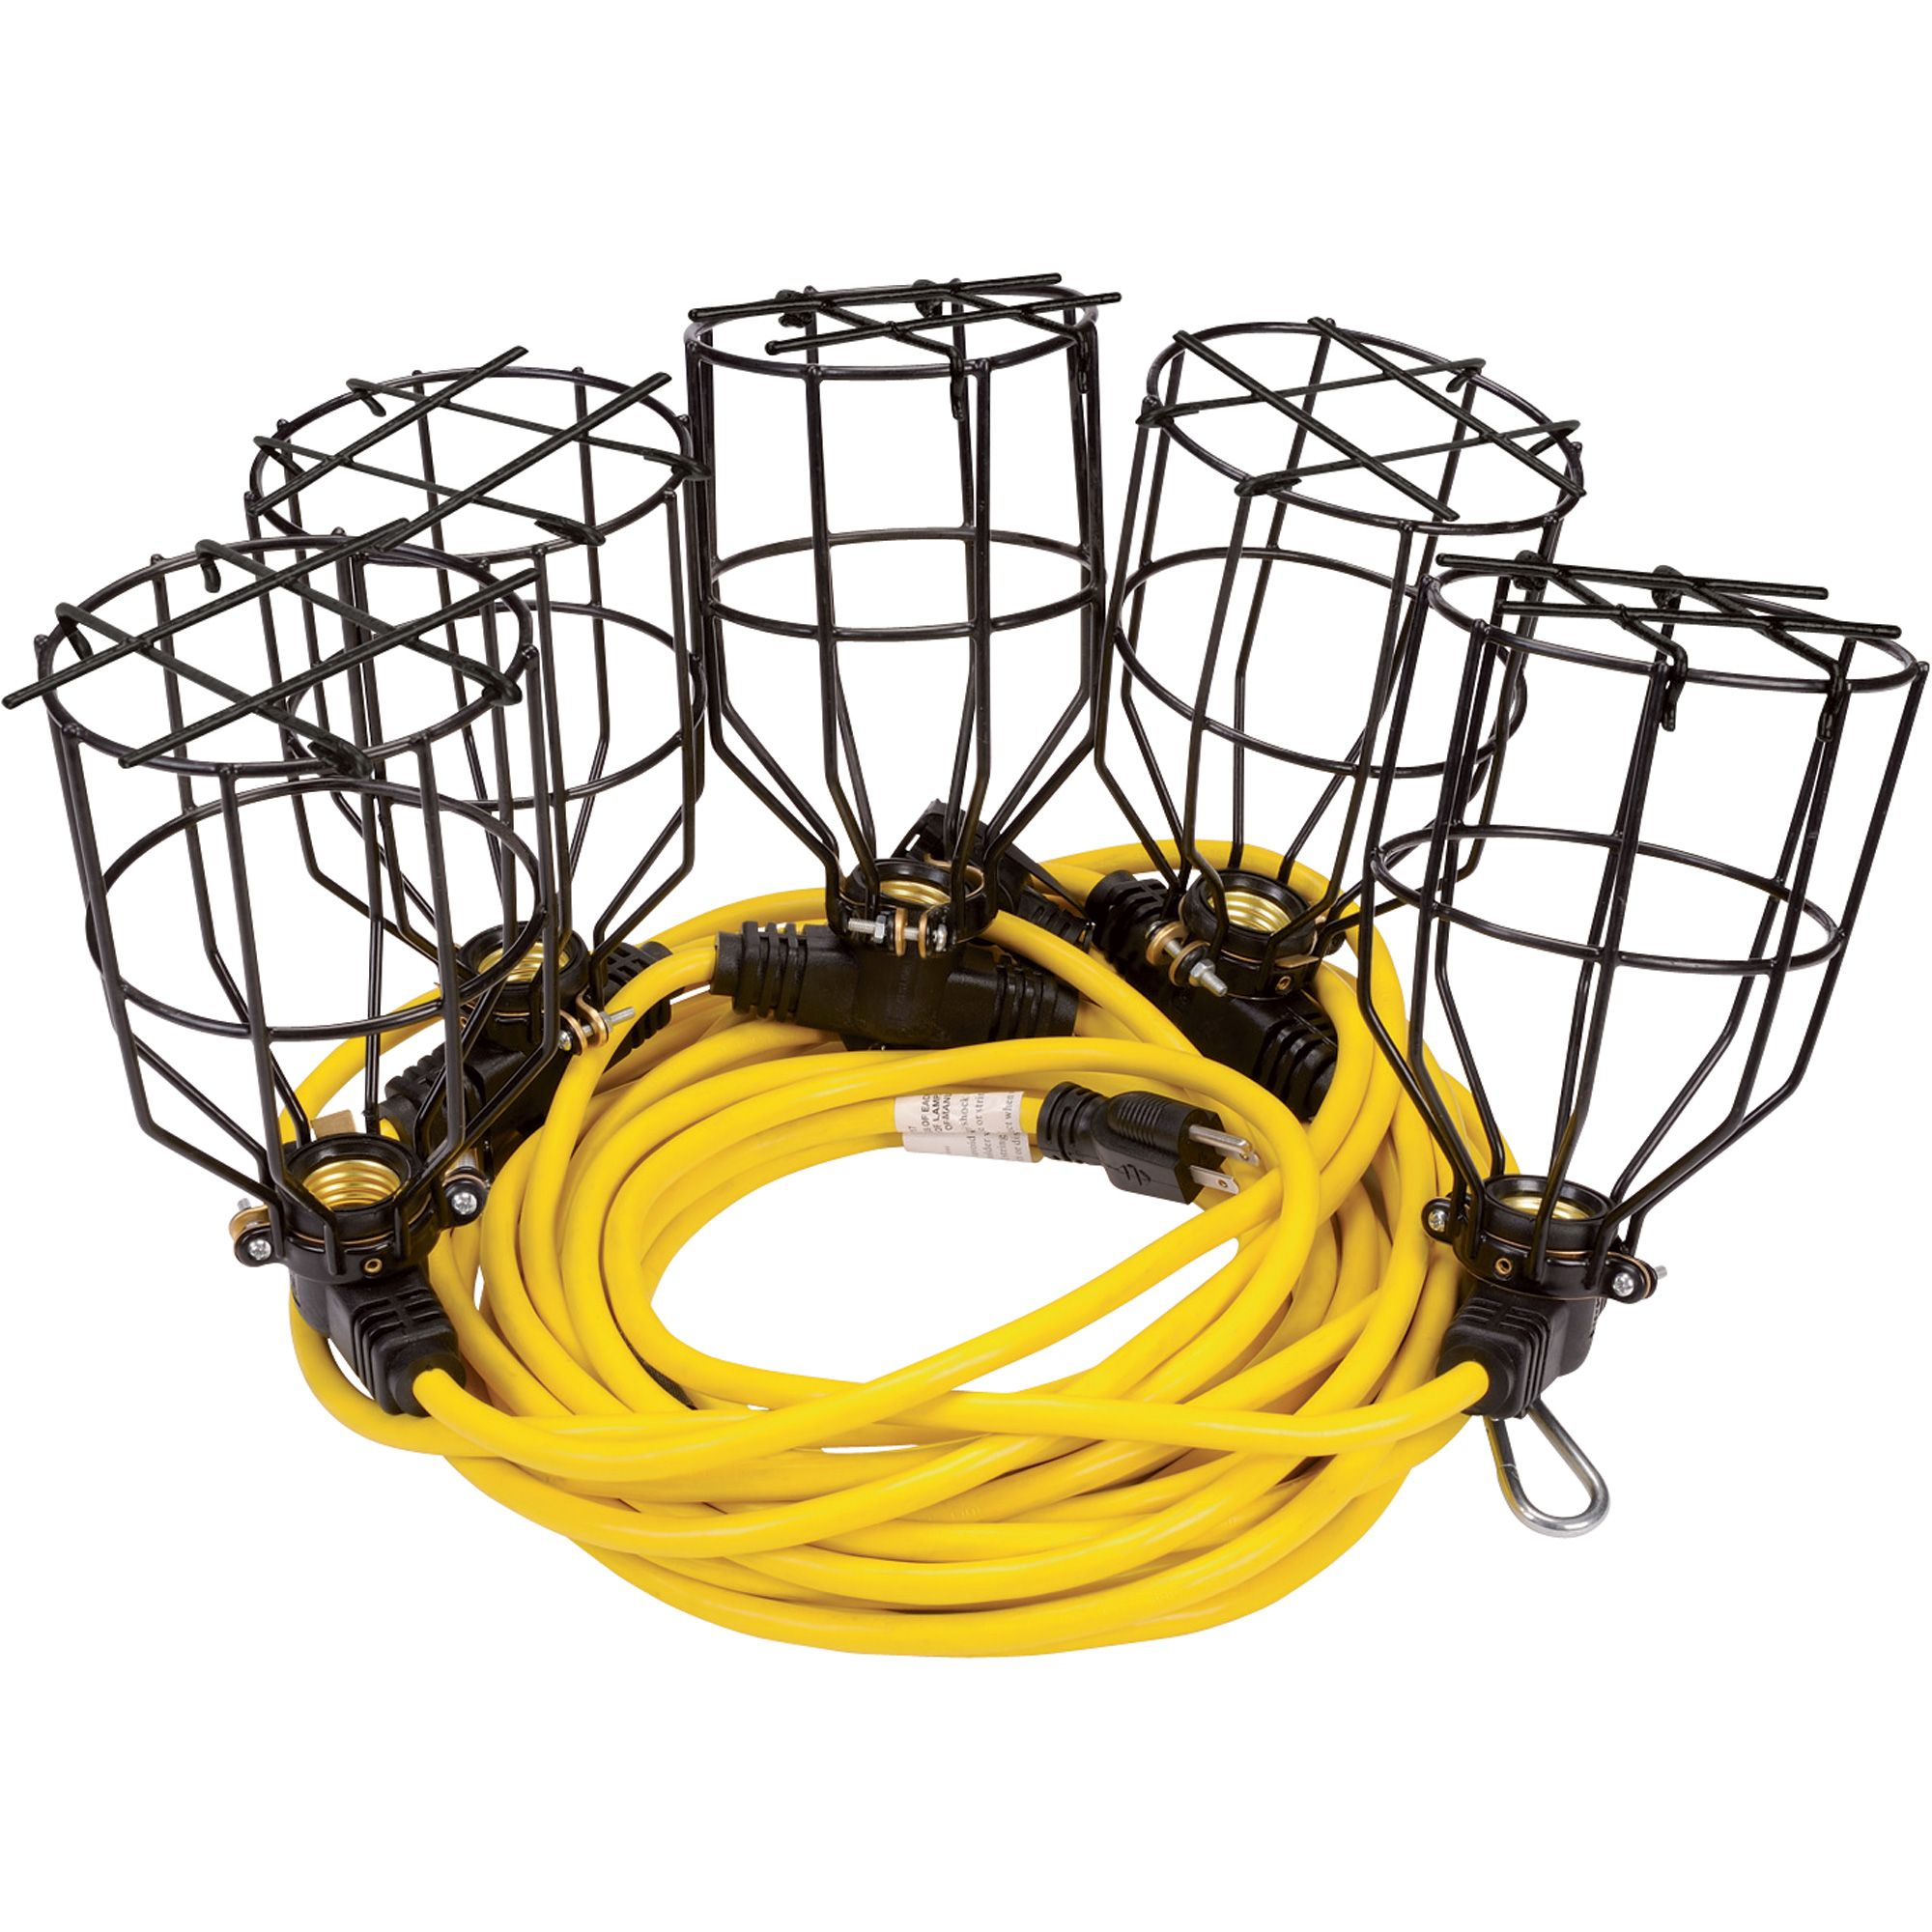 Construction Light String Fascinating Construction Lights Fun For Boys Construction Room  Construction